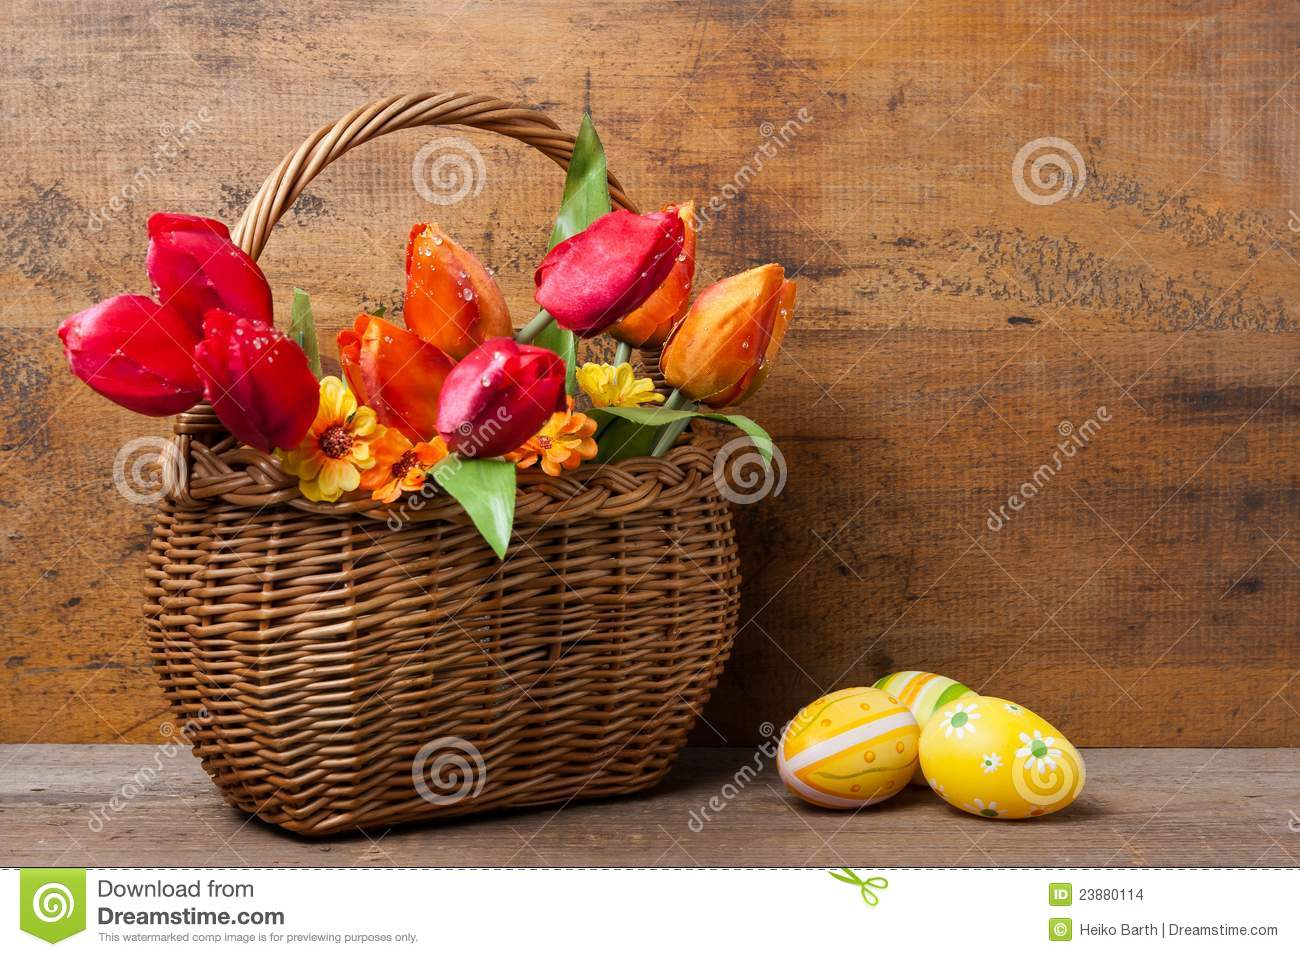 Basket with tulips and eggs